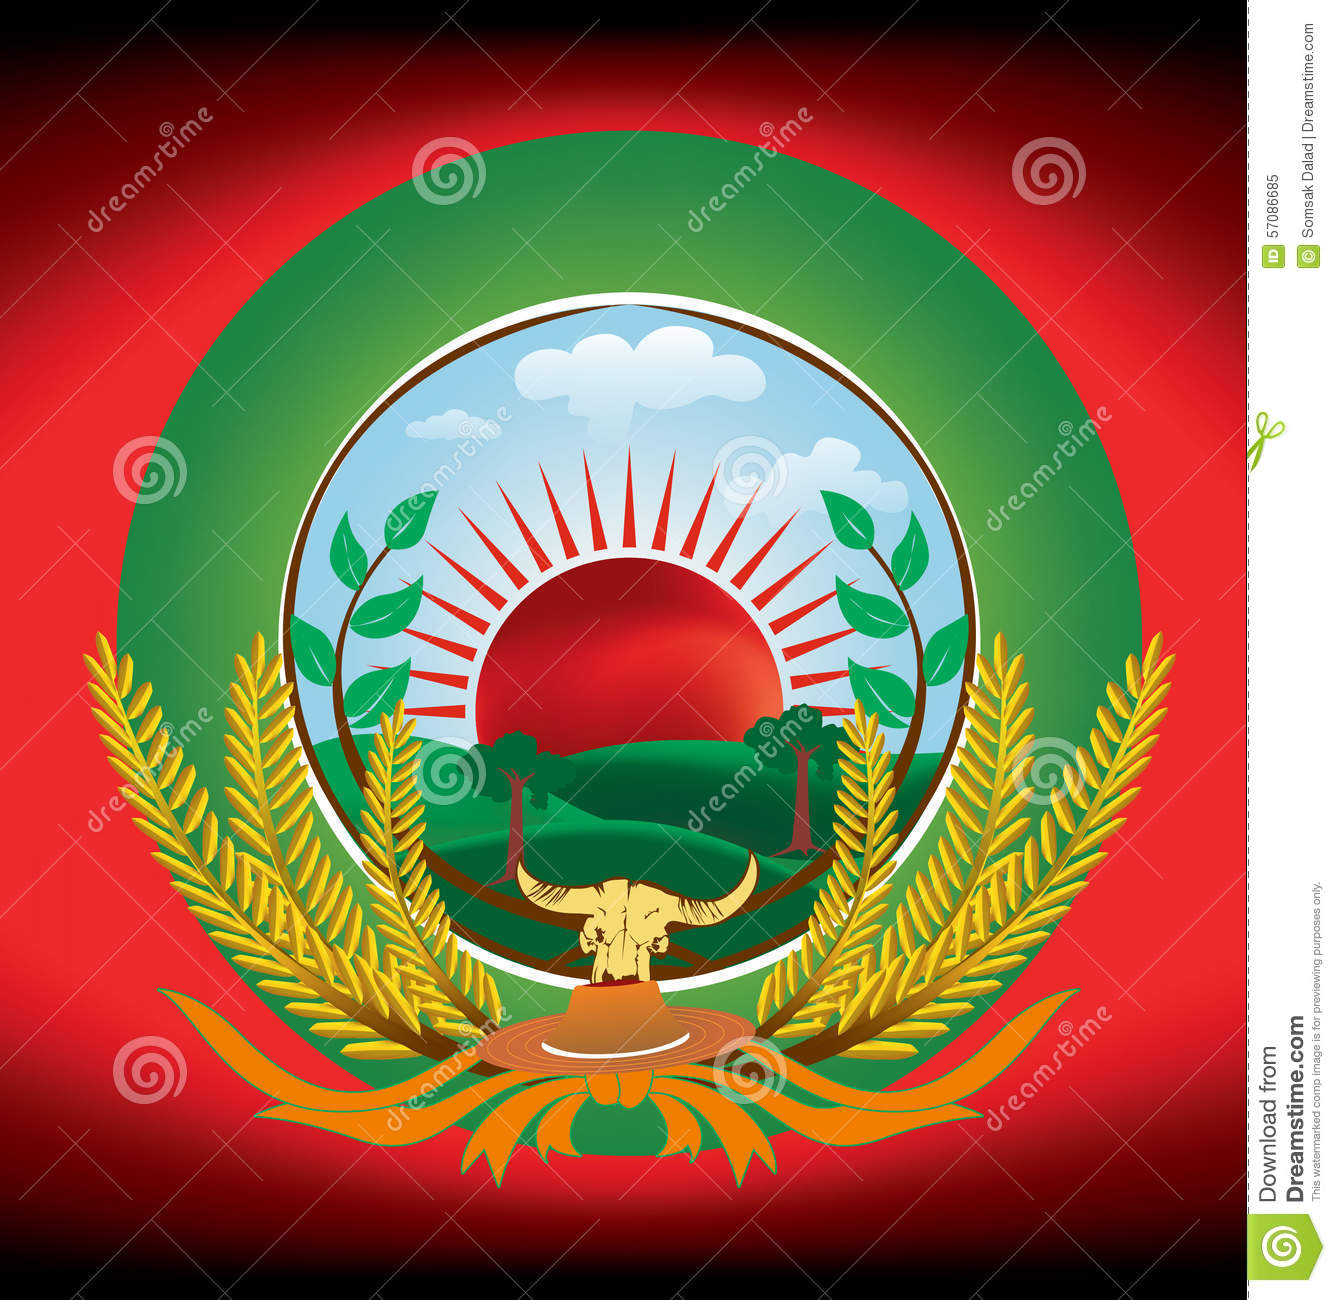 agri logo new stock illustration image 57086685